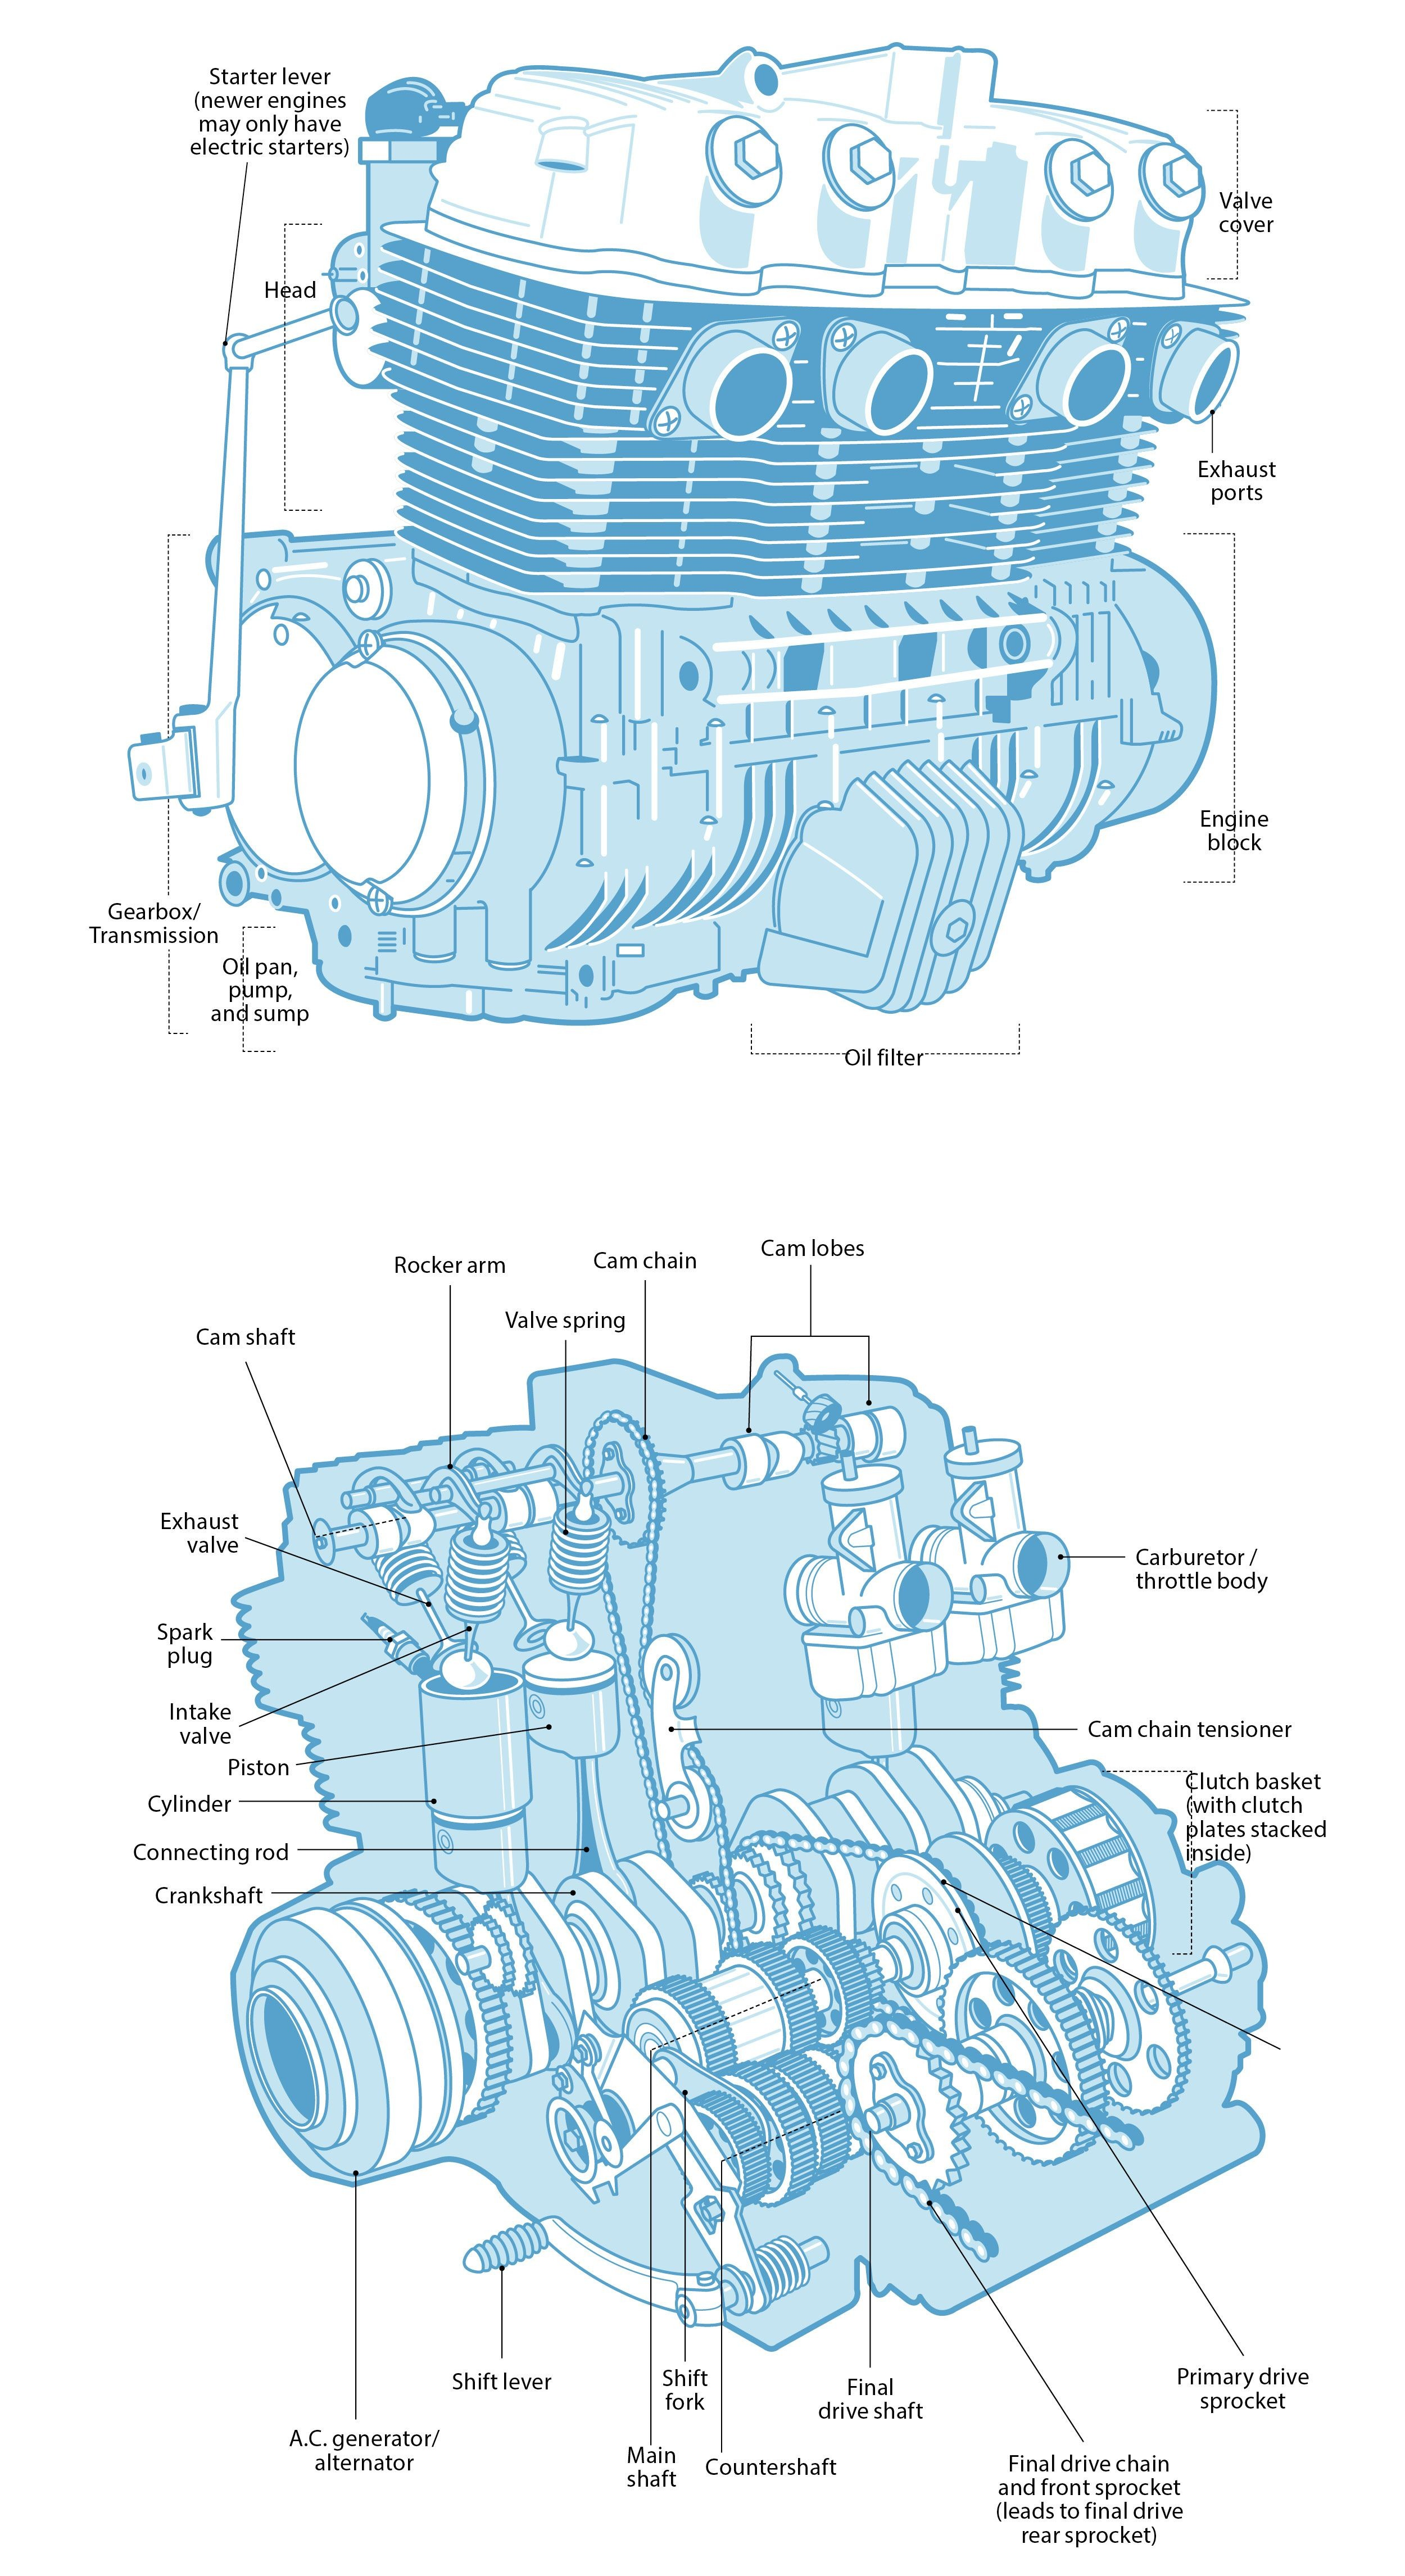 parts of a car engine diagram understand engine anatomy tip 262 from the  pages of the